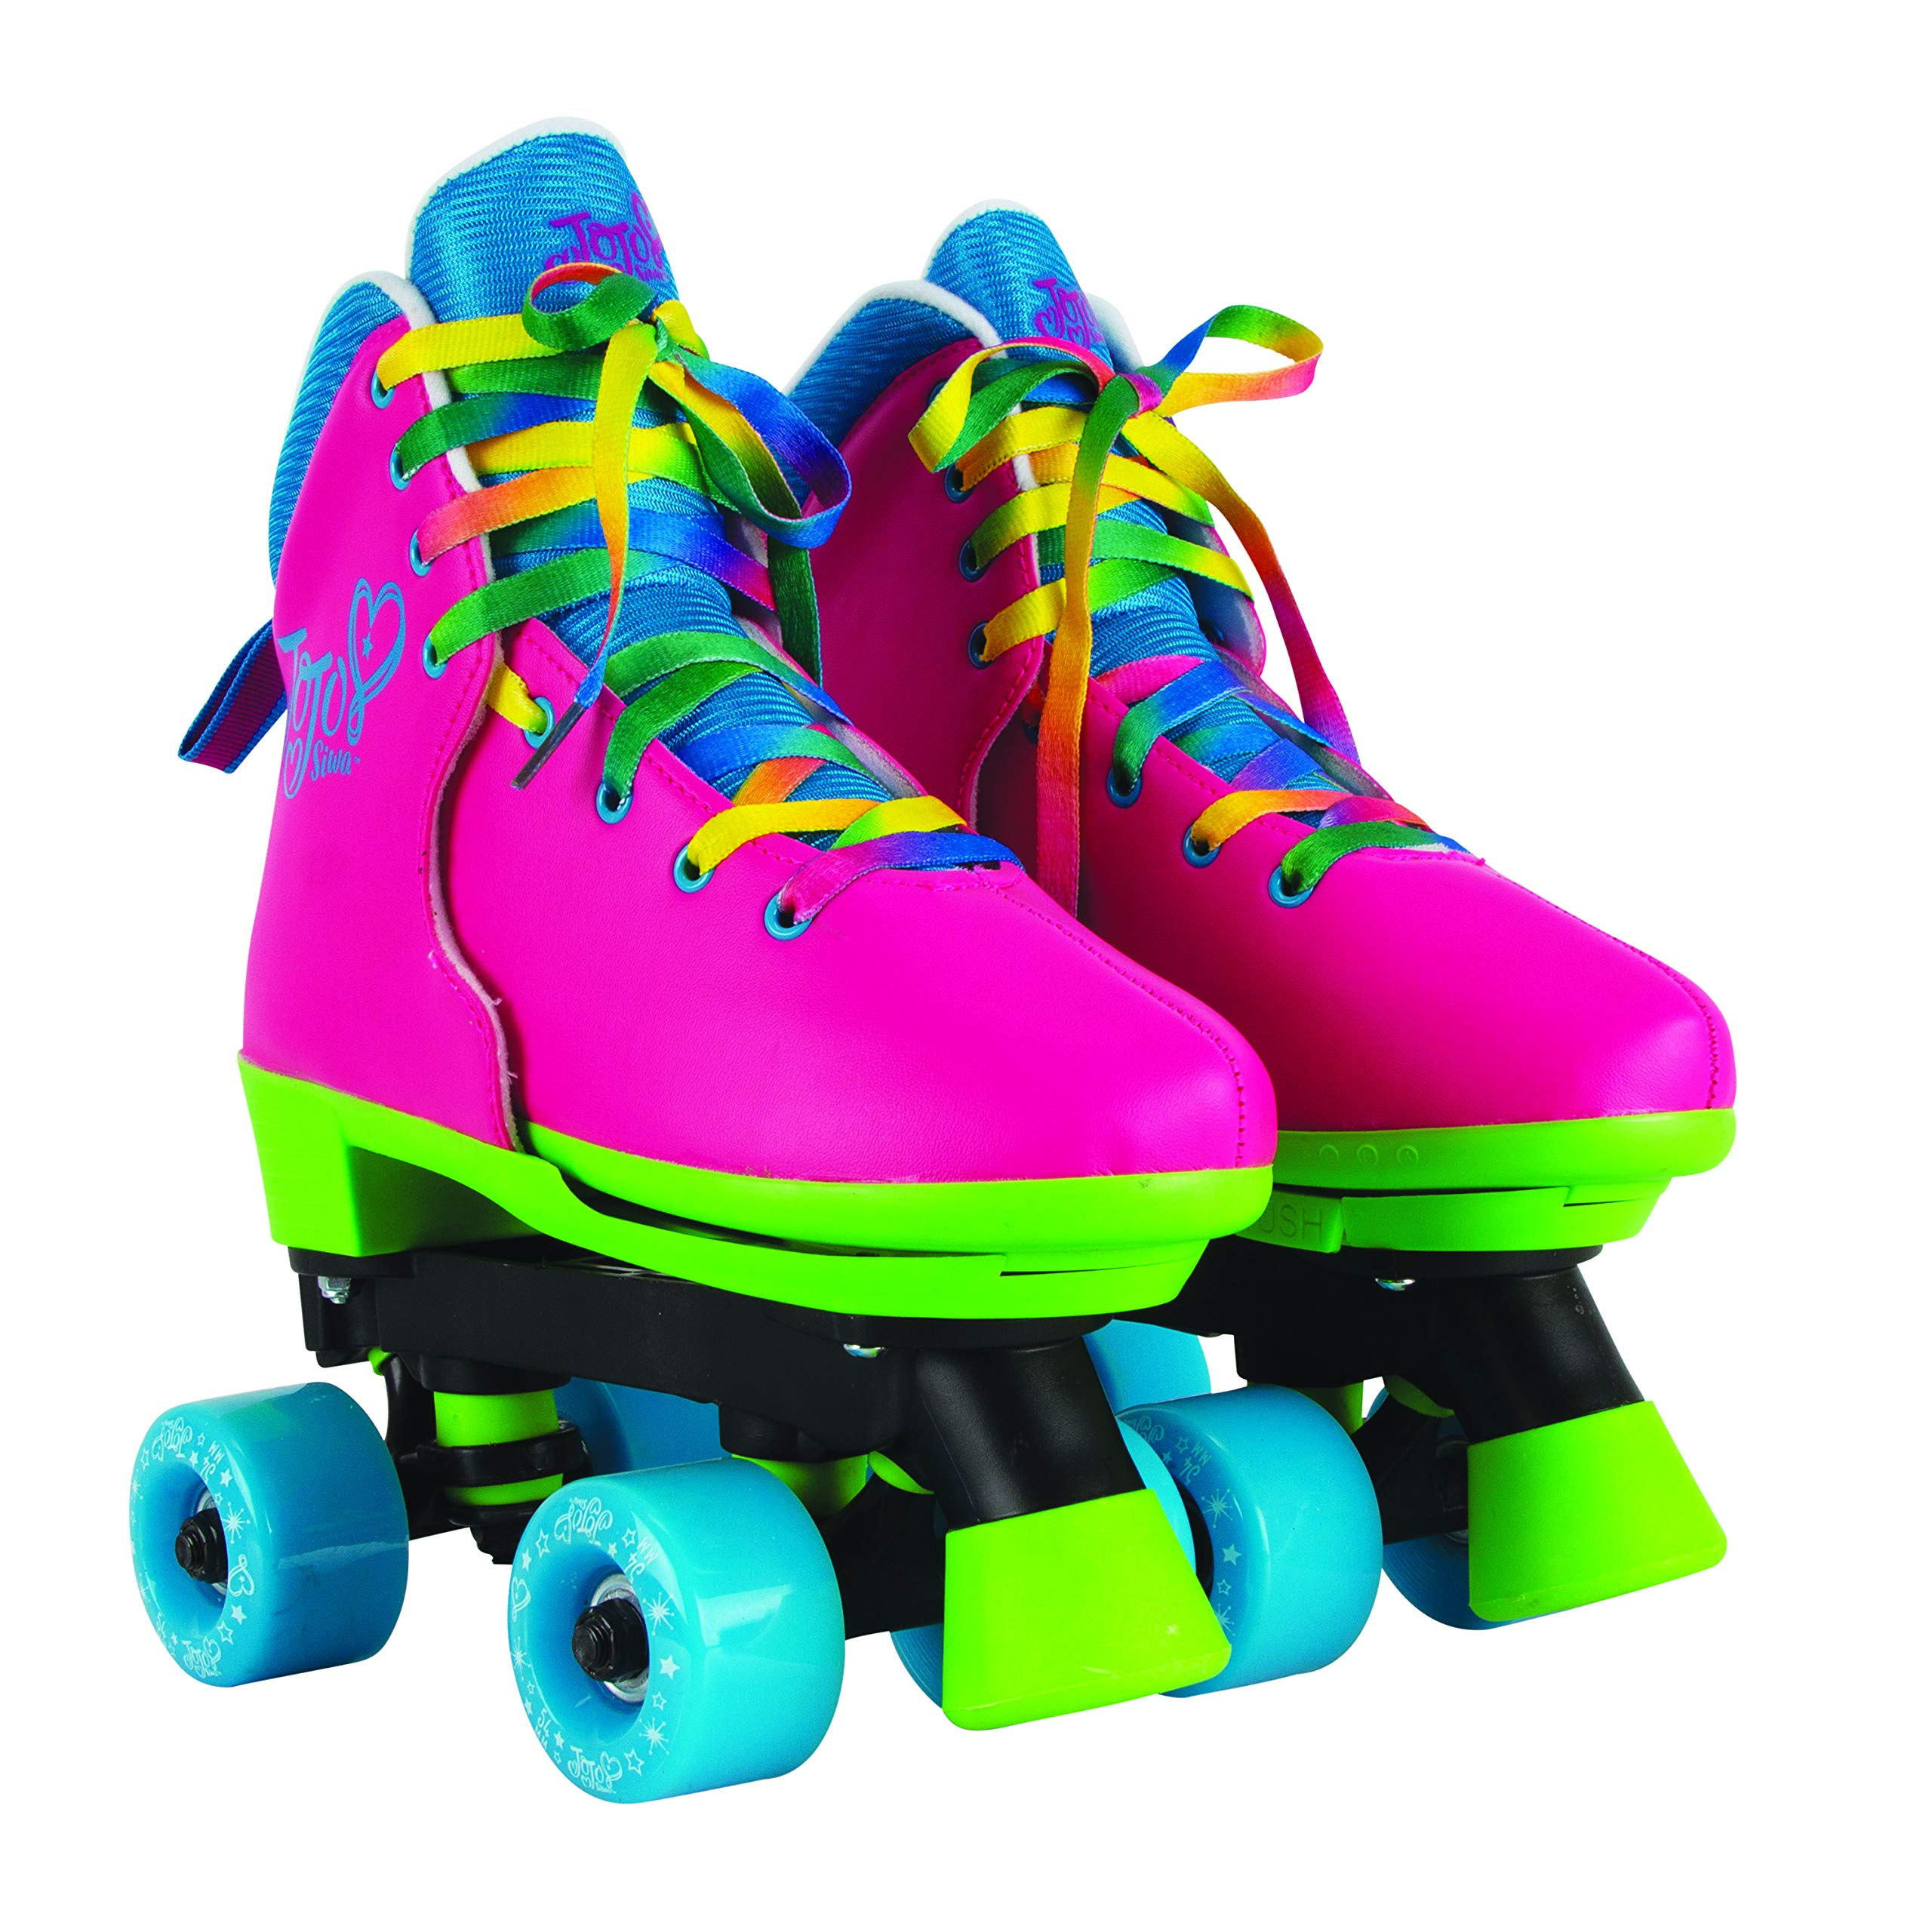 Circle Society Classic Adjustable Indoor & Outdoor Childrens Roller Skates - JoJo Rainbow - Sizes 12-3 by Circle Society